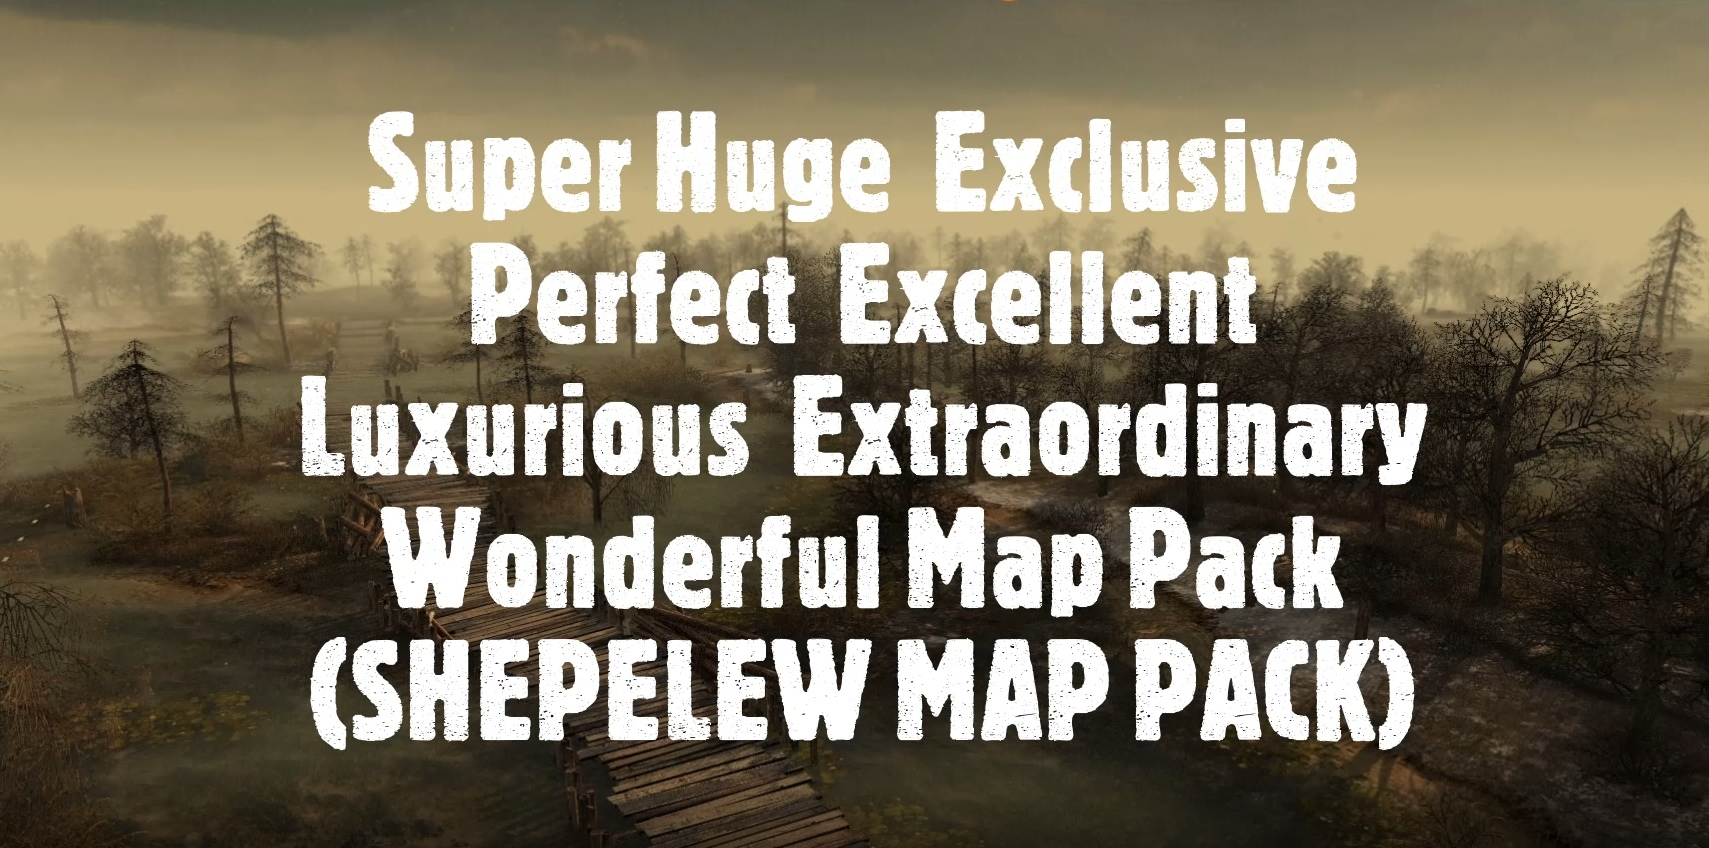 Скачать файл Super Huge  Exclusive Perfect  Excellent  Luxurious  Extraordinary Wonderful Map Pack (SHEPELEW MAP PACK)